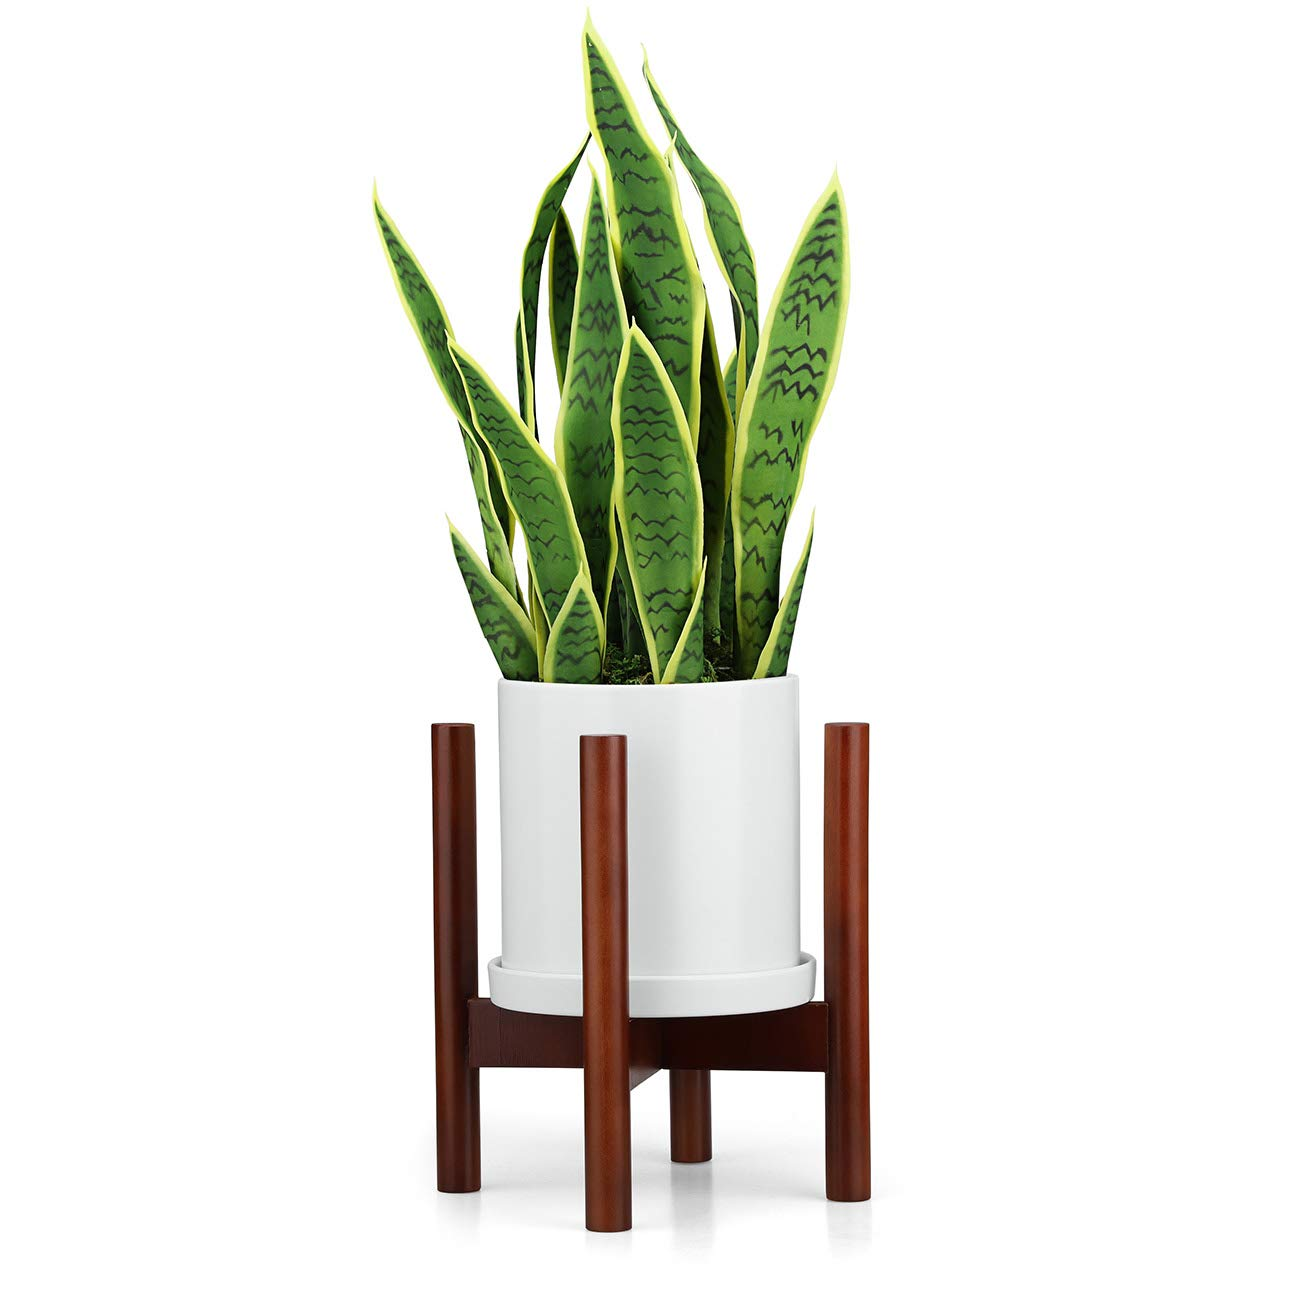 Rmbo -USA Mid Century Plant Stand, Wood Indoor Flower Pot Holder, Simple Display Potted Rack, Modern Home Decor ,Elegant Mid Century Plant Stand Fits -8in